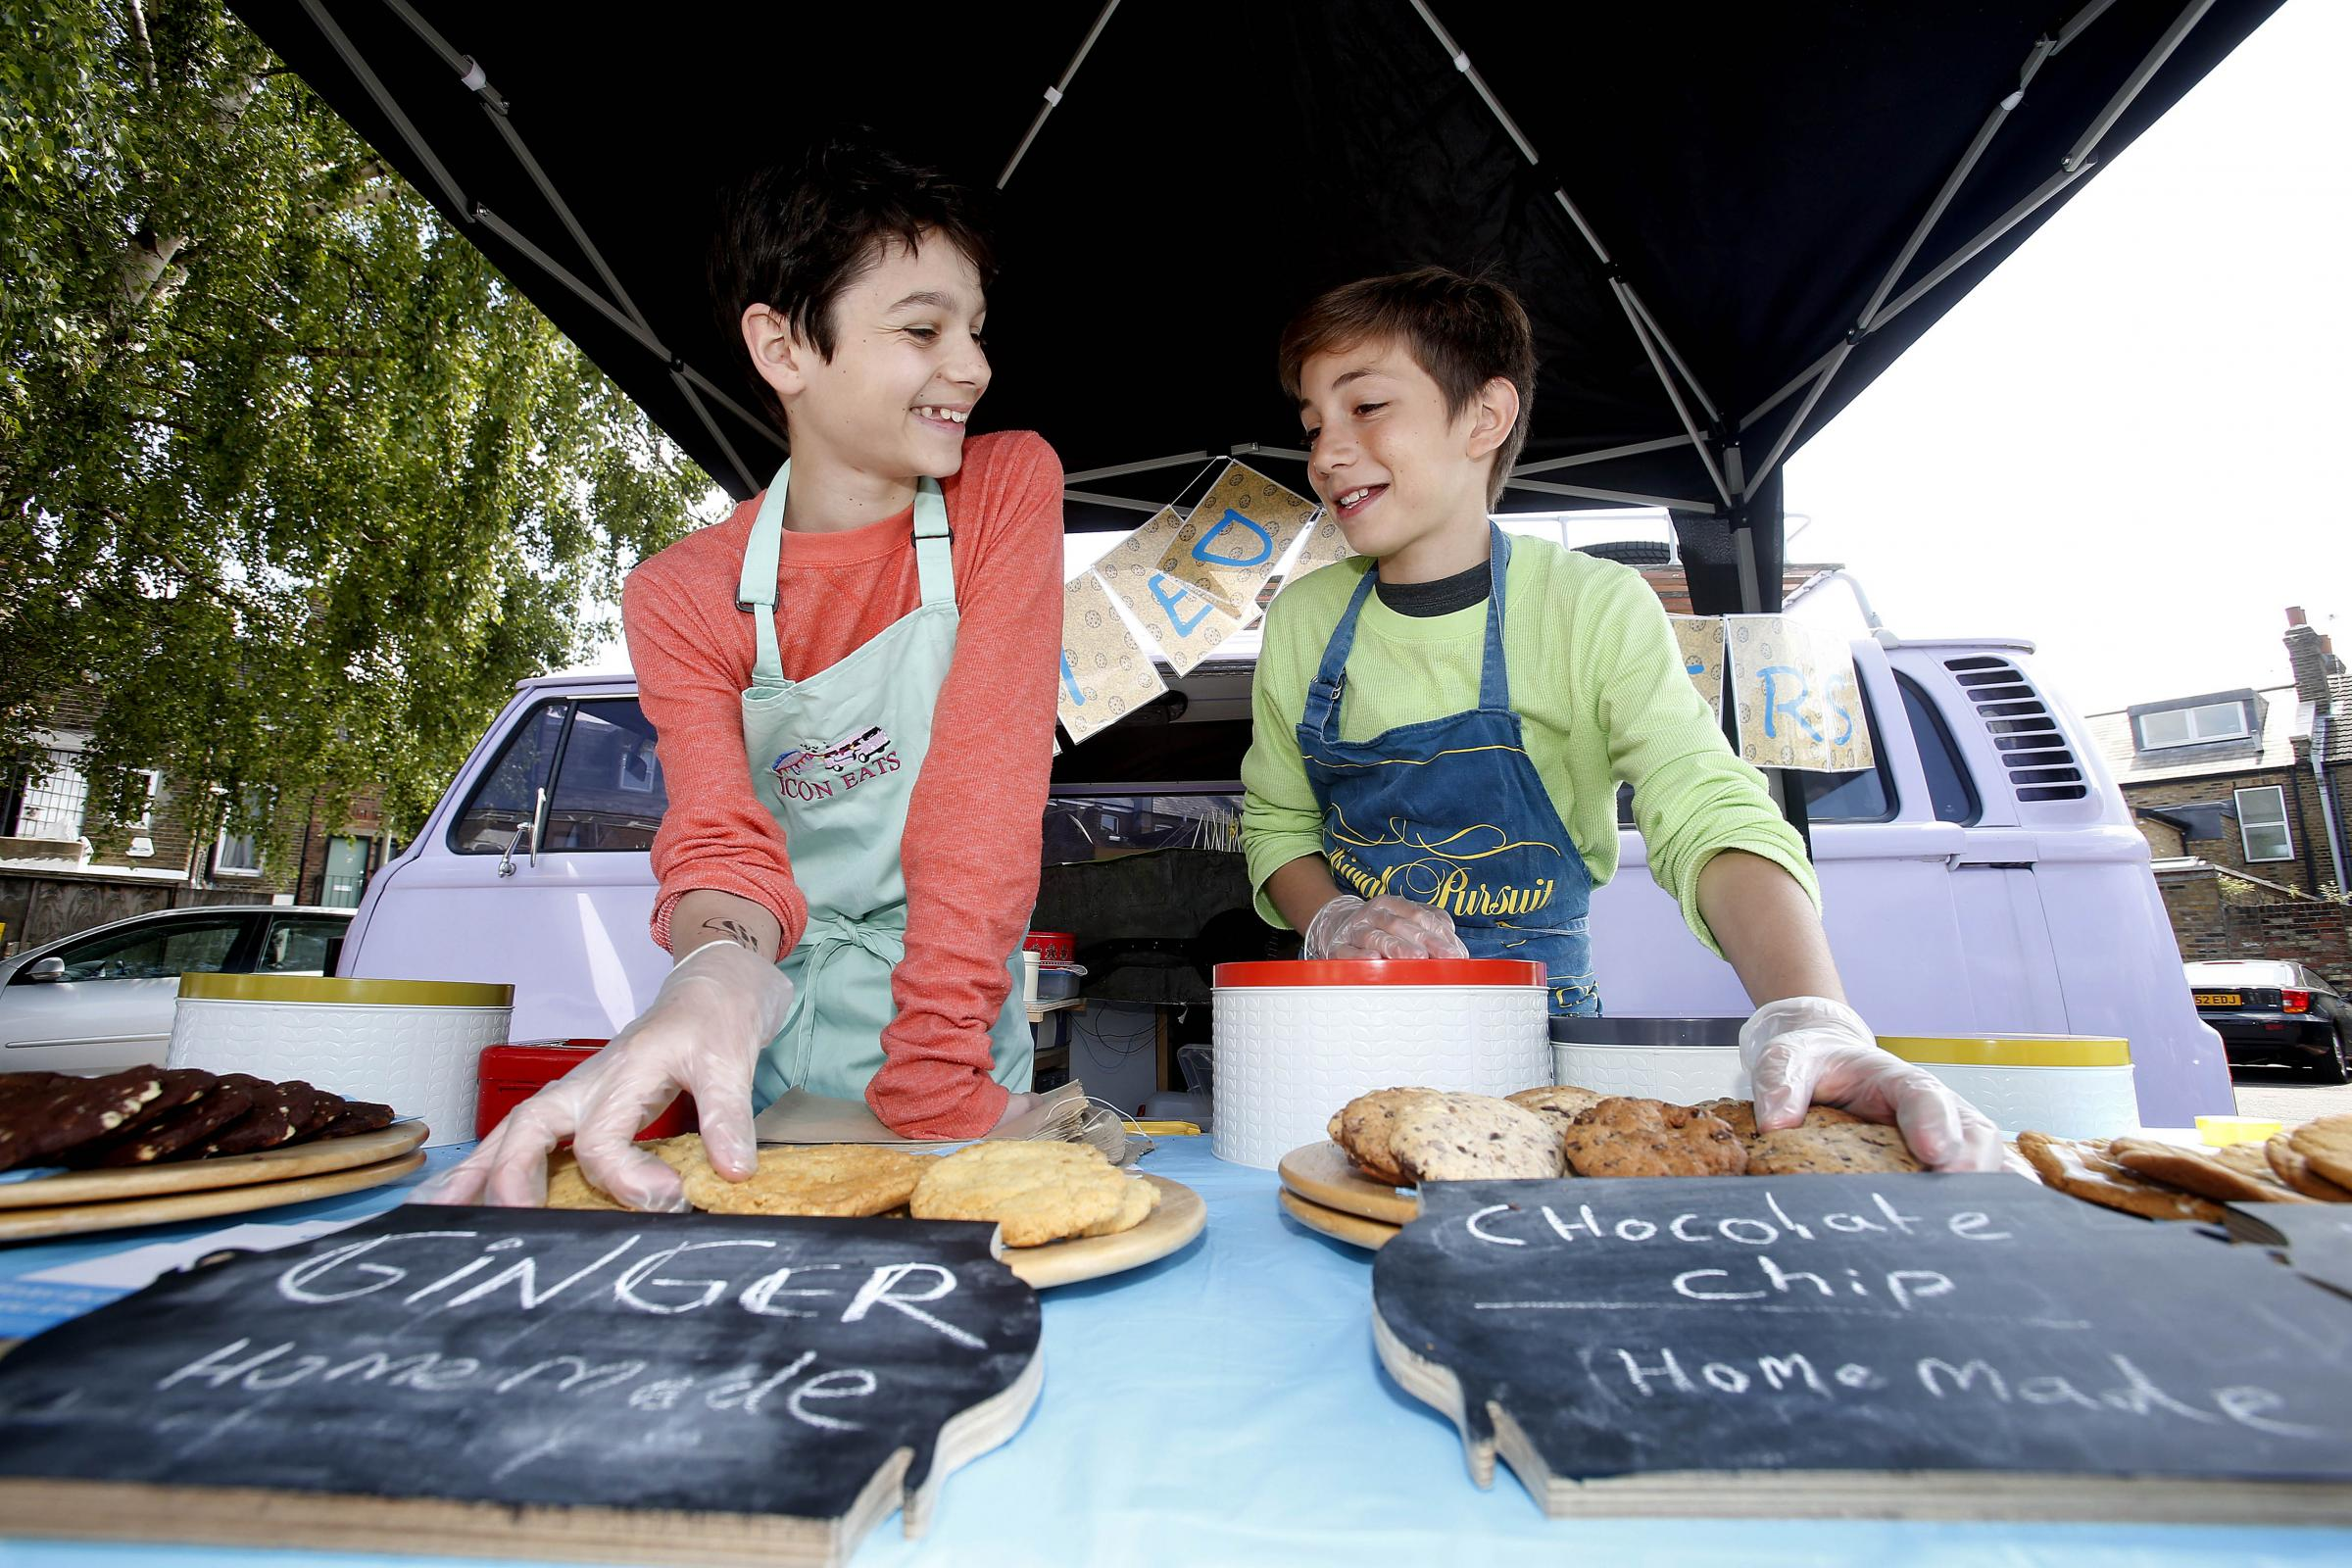 Asher Kelvin, 13 and Sam Lachmann, 12, decided to set up their own business, 'Cookie Dealers'.